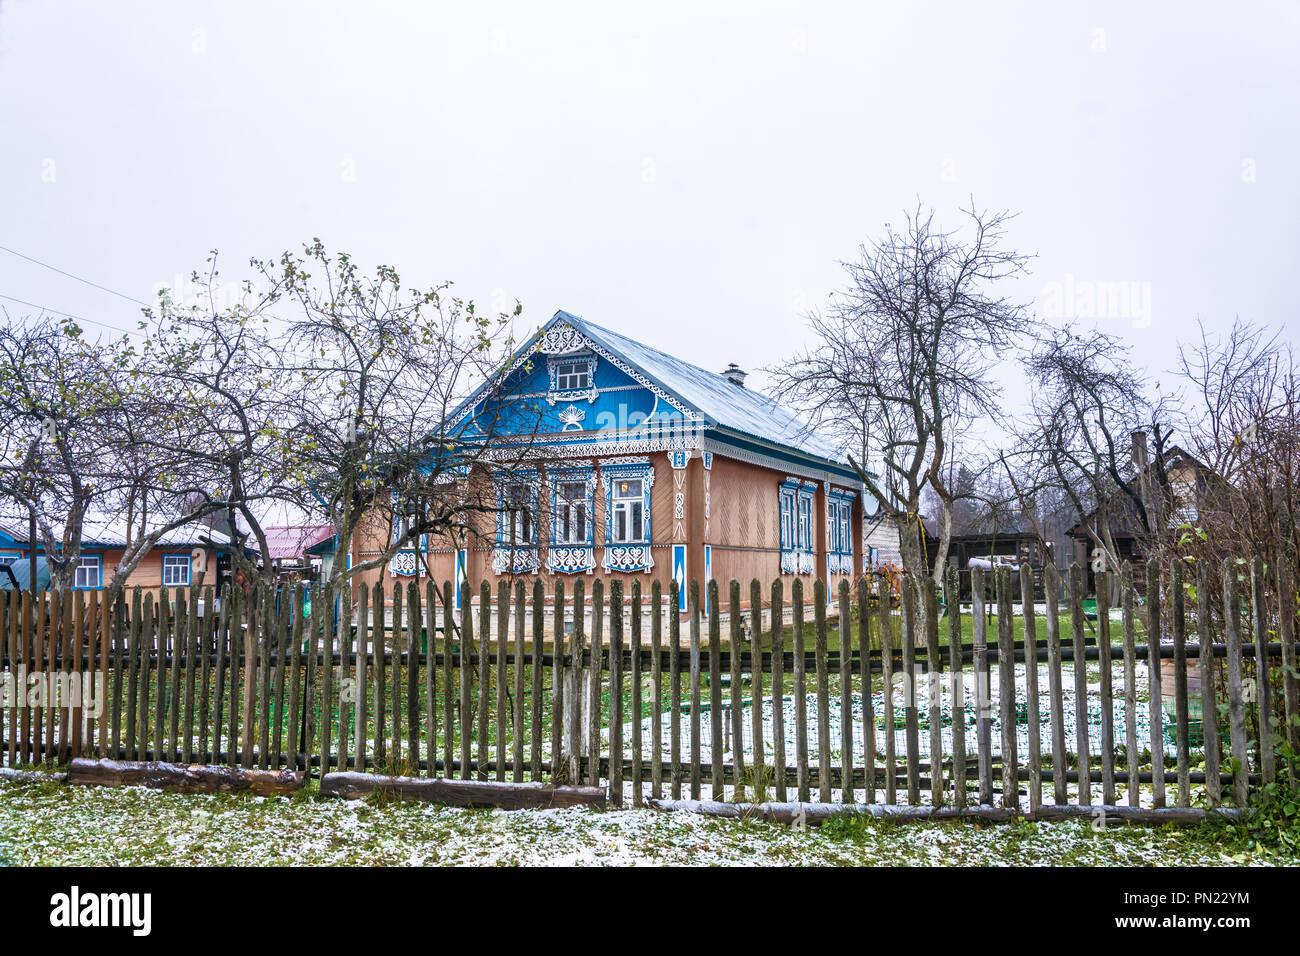 Ivanovo oblast, Russia – November 11, 2017: the Beautiful rustic house, decorated with wooden carvings, 11 Nov 2017, Ivanovo oblast, Russia. - Stock Image